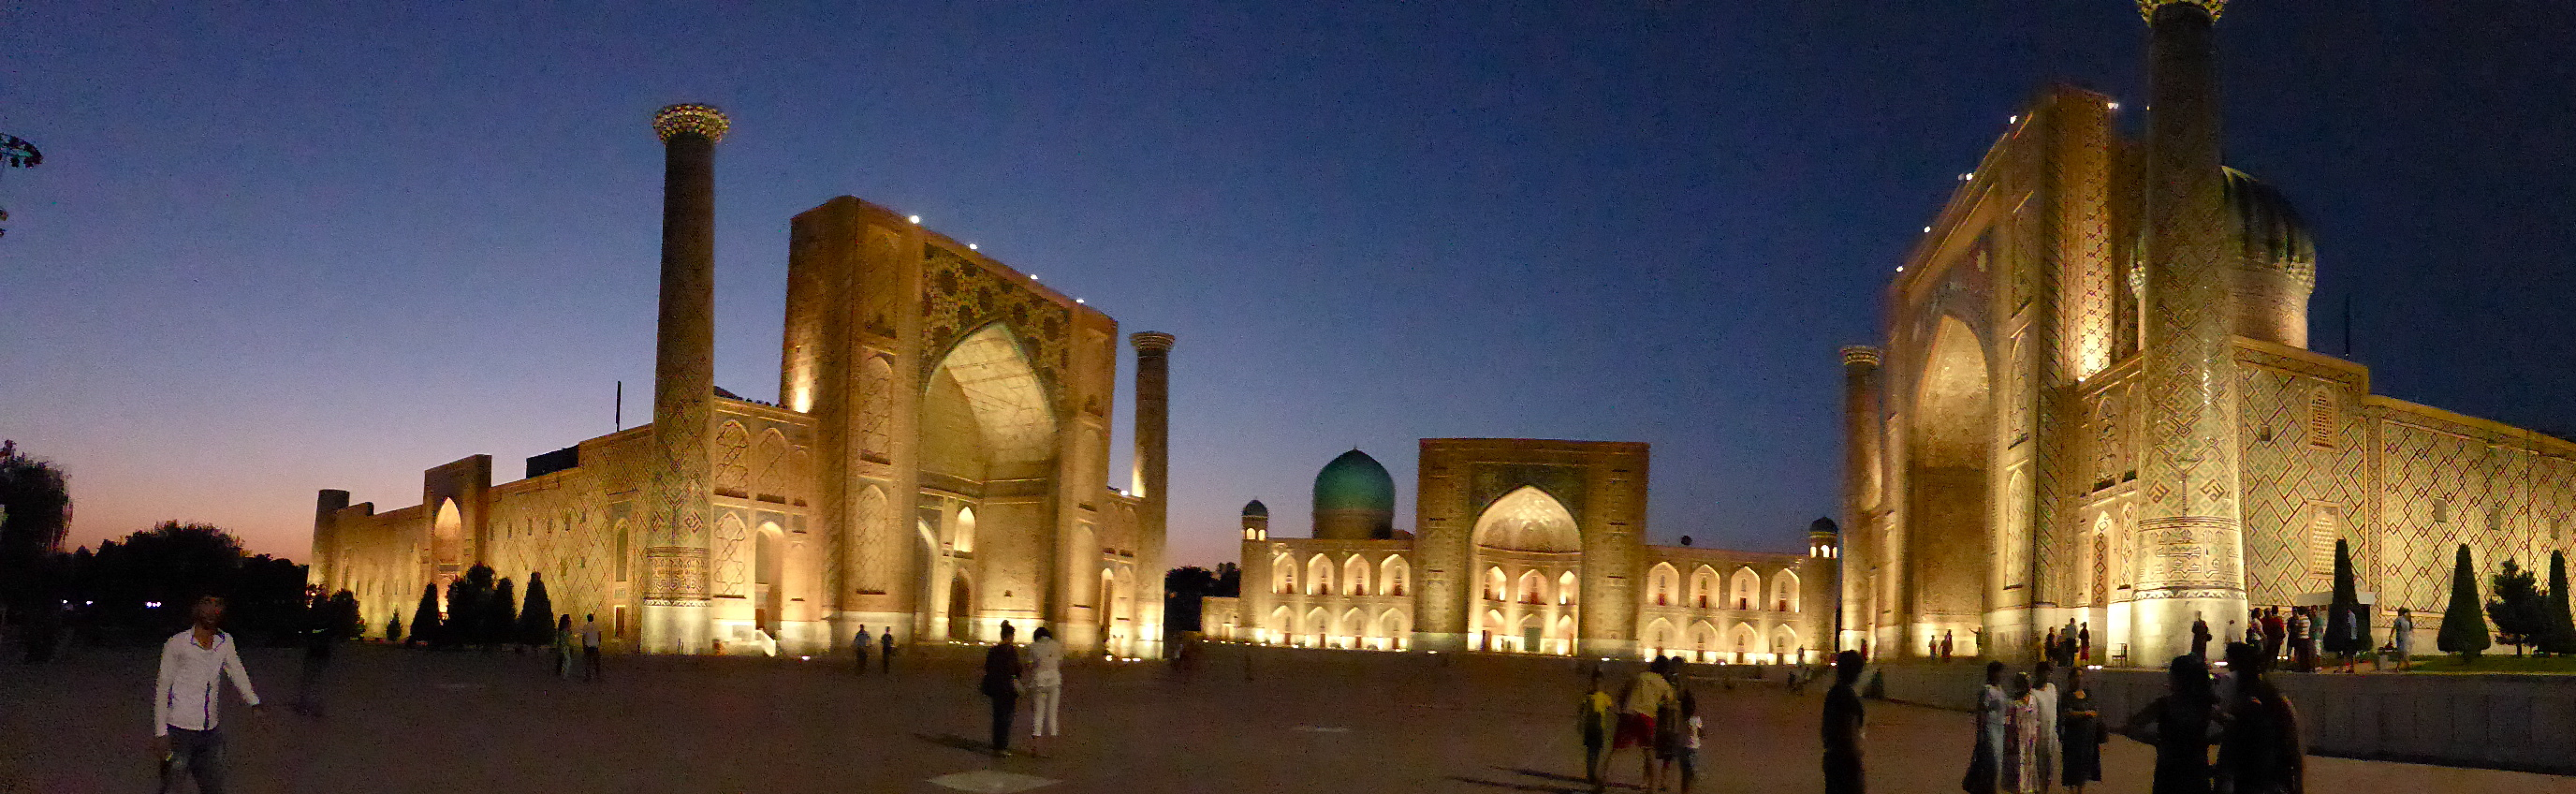 Central Asia trip extract July-August 2016